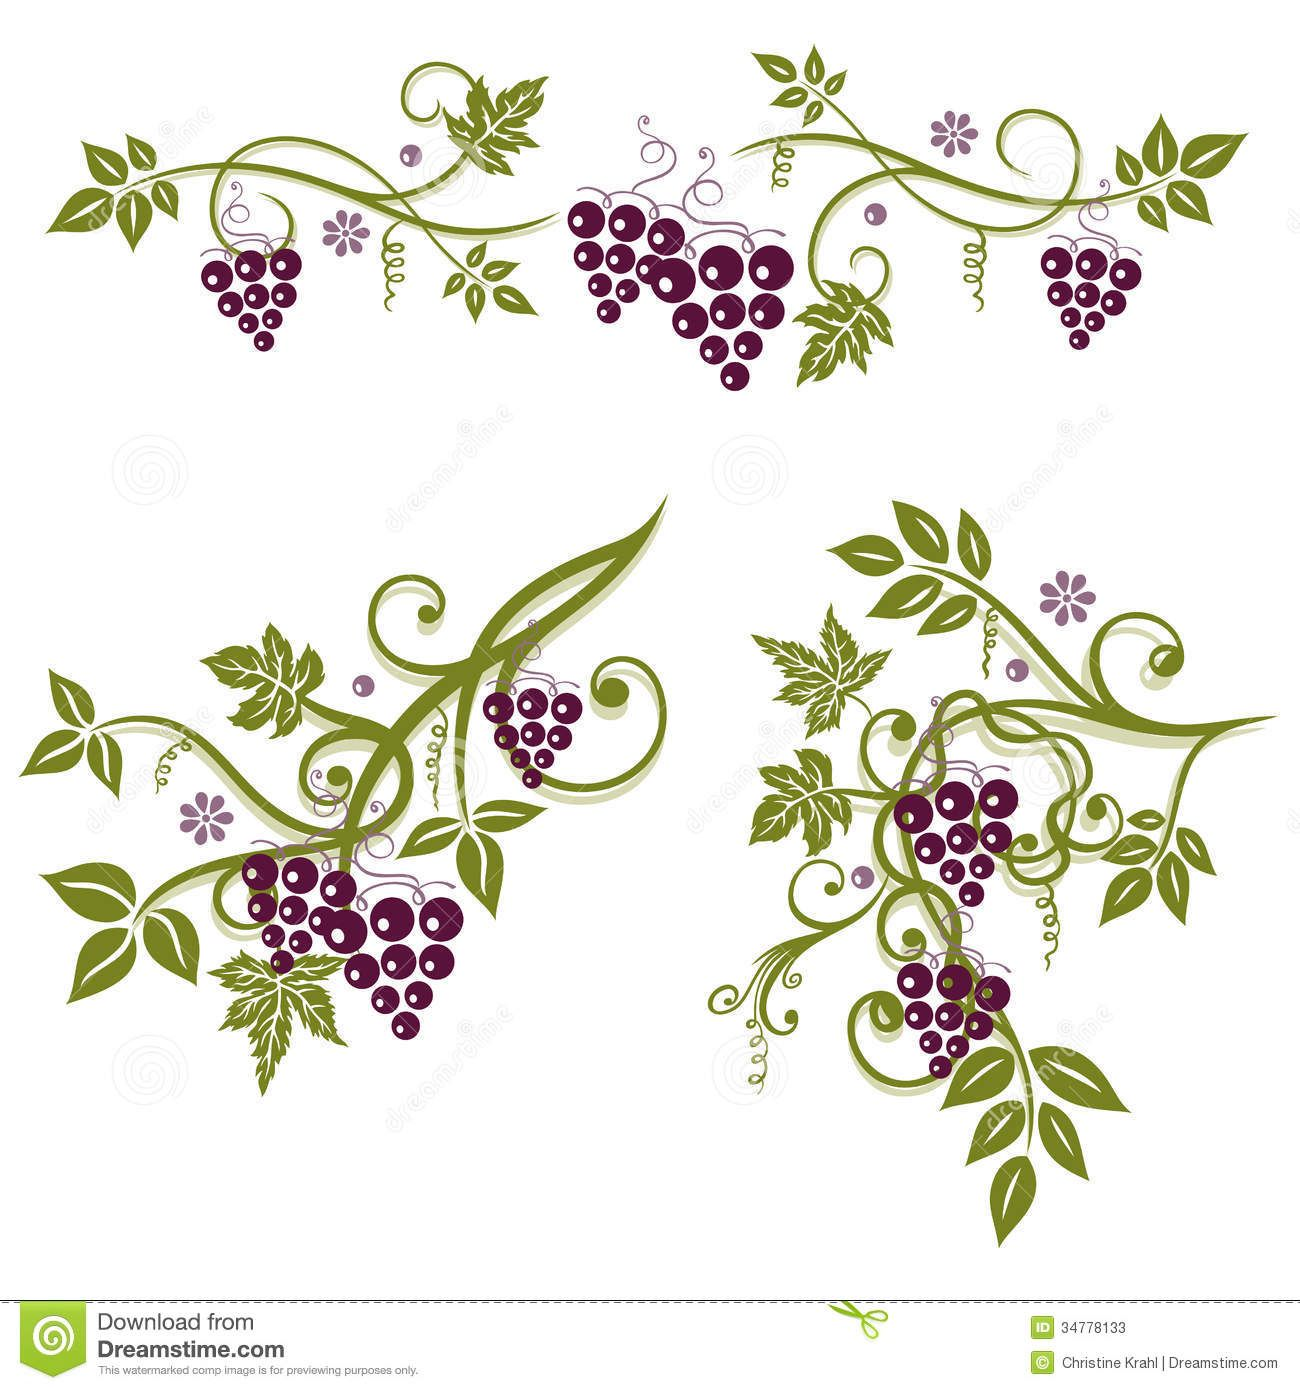 medium resolution of grape vines image 5 clipart free clip art images